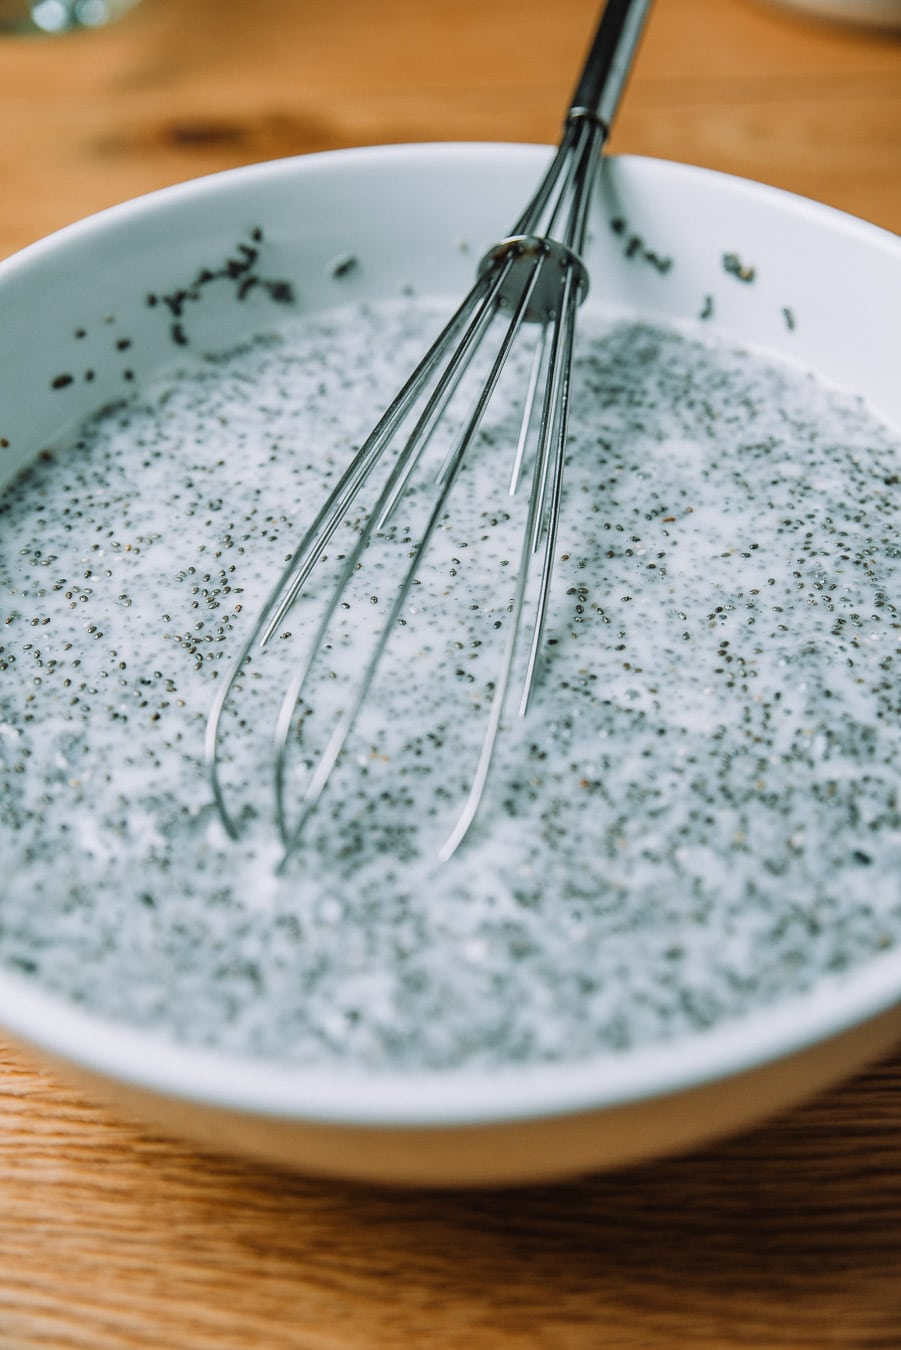 White bowl with milk and chia seeds